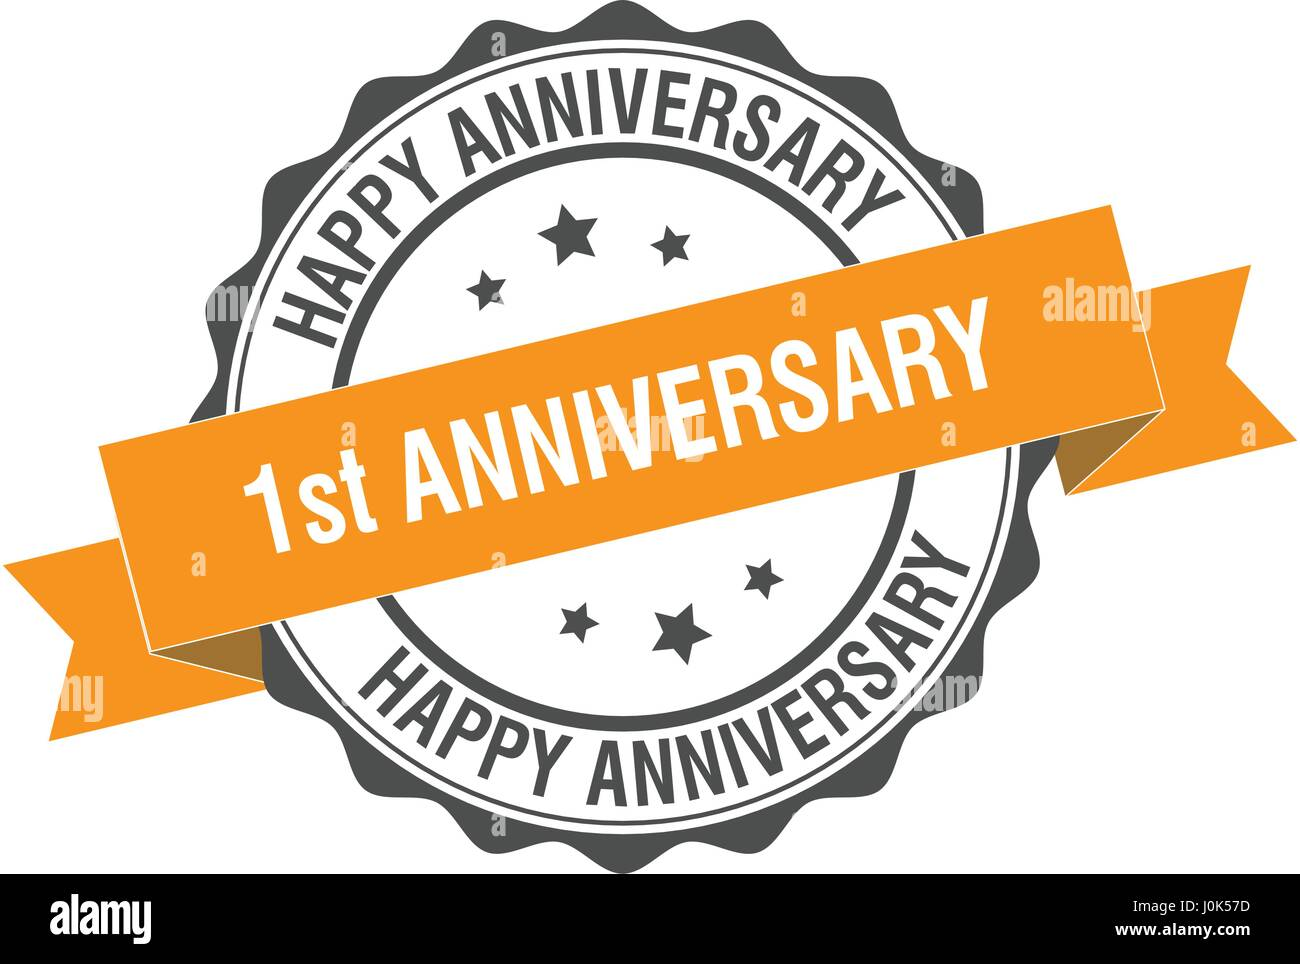 1st anniversary stamp illustration - Stock Vector